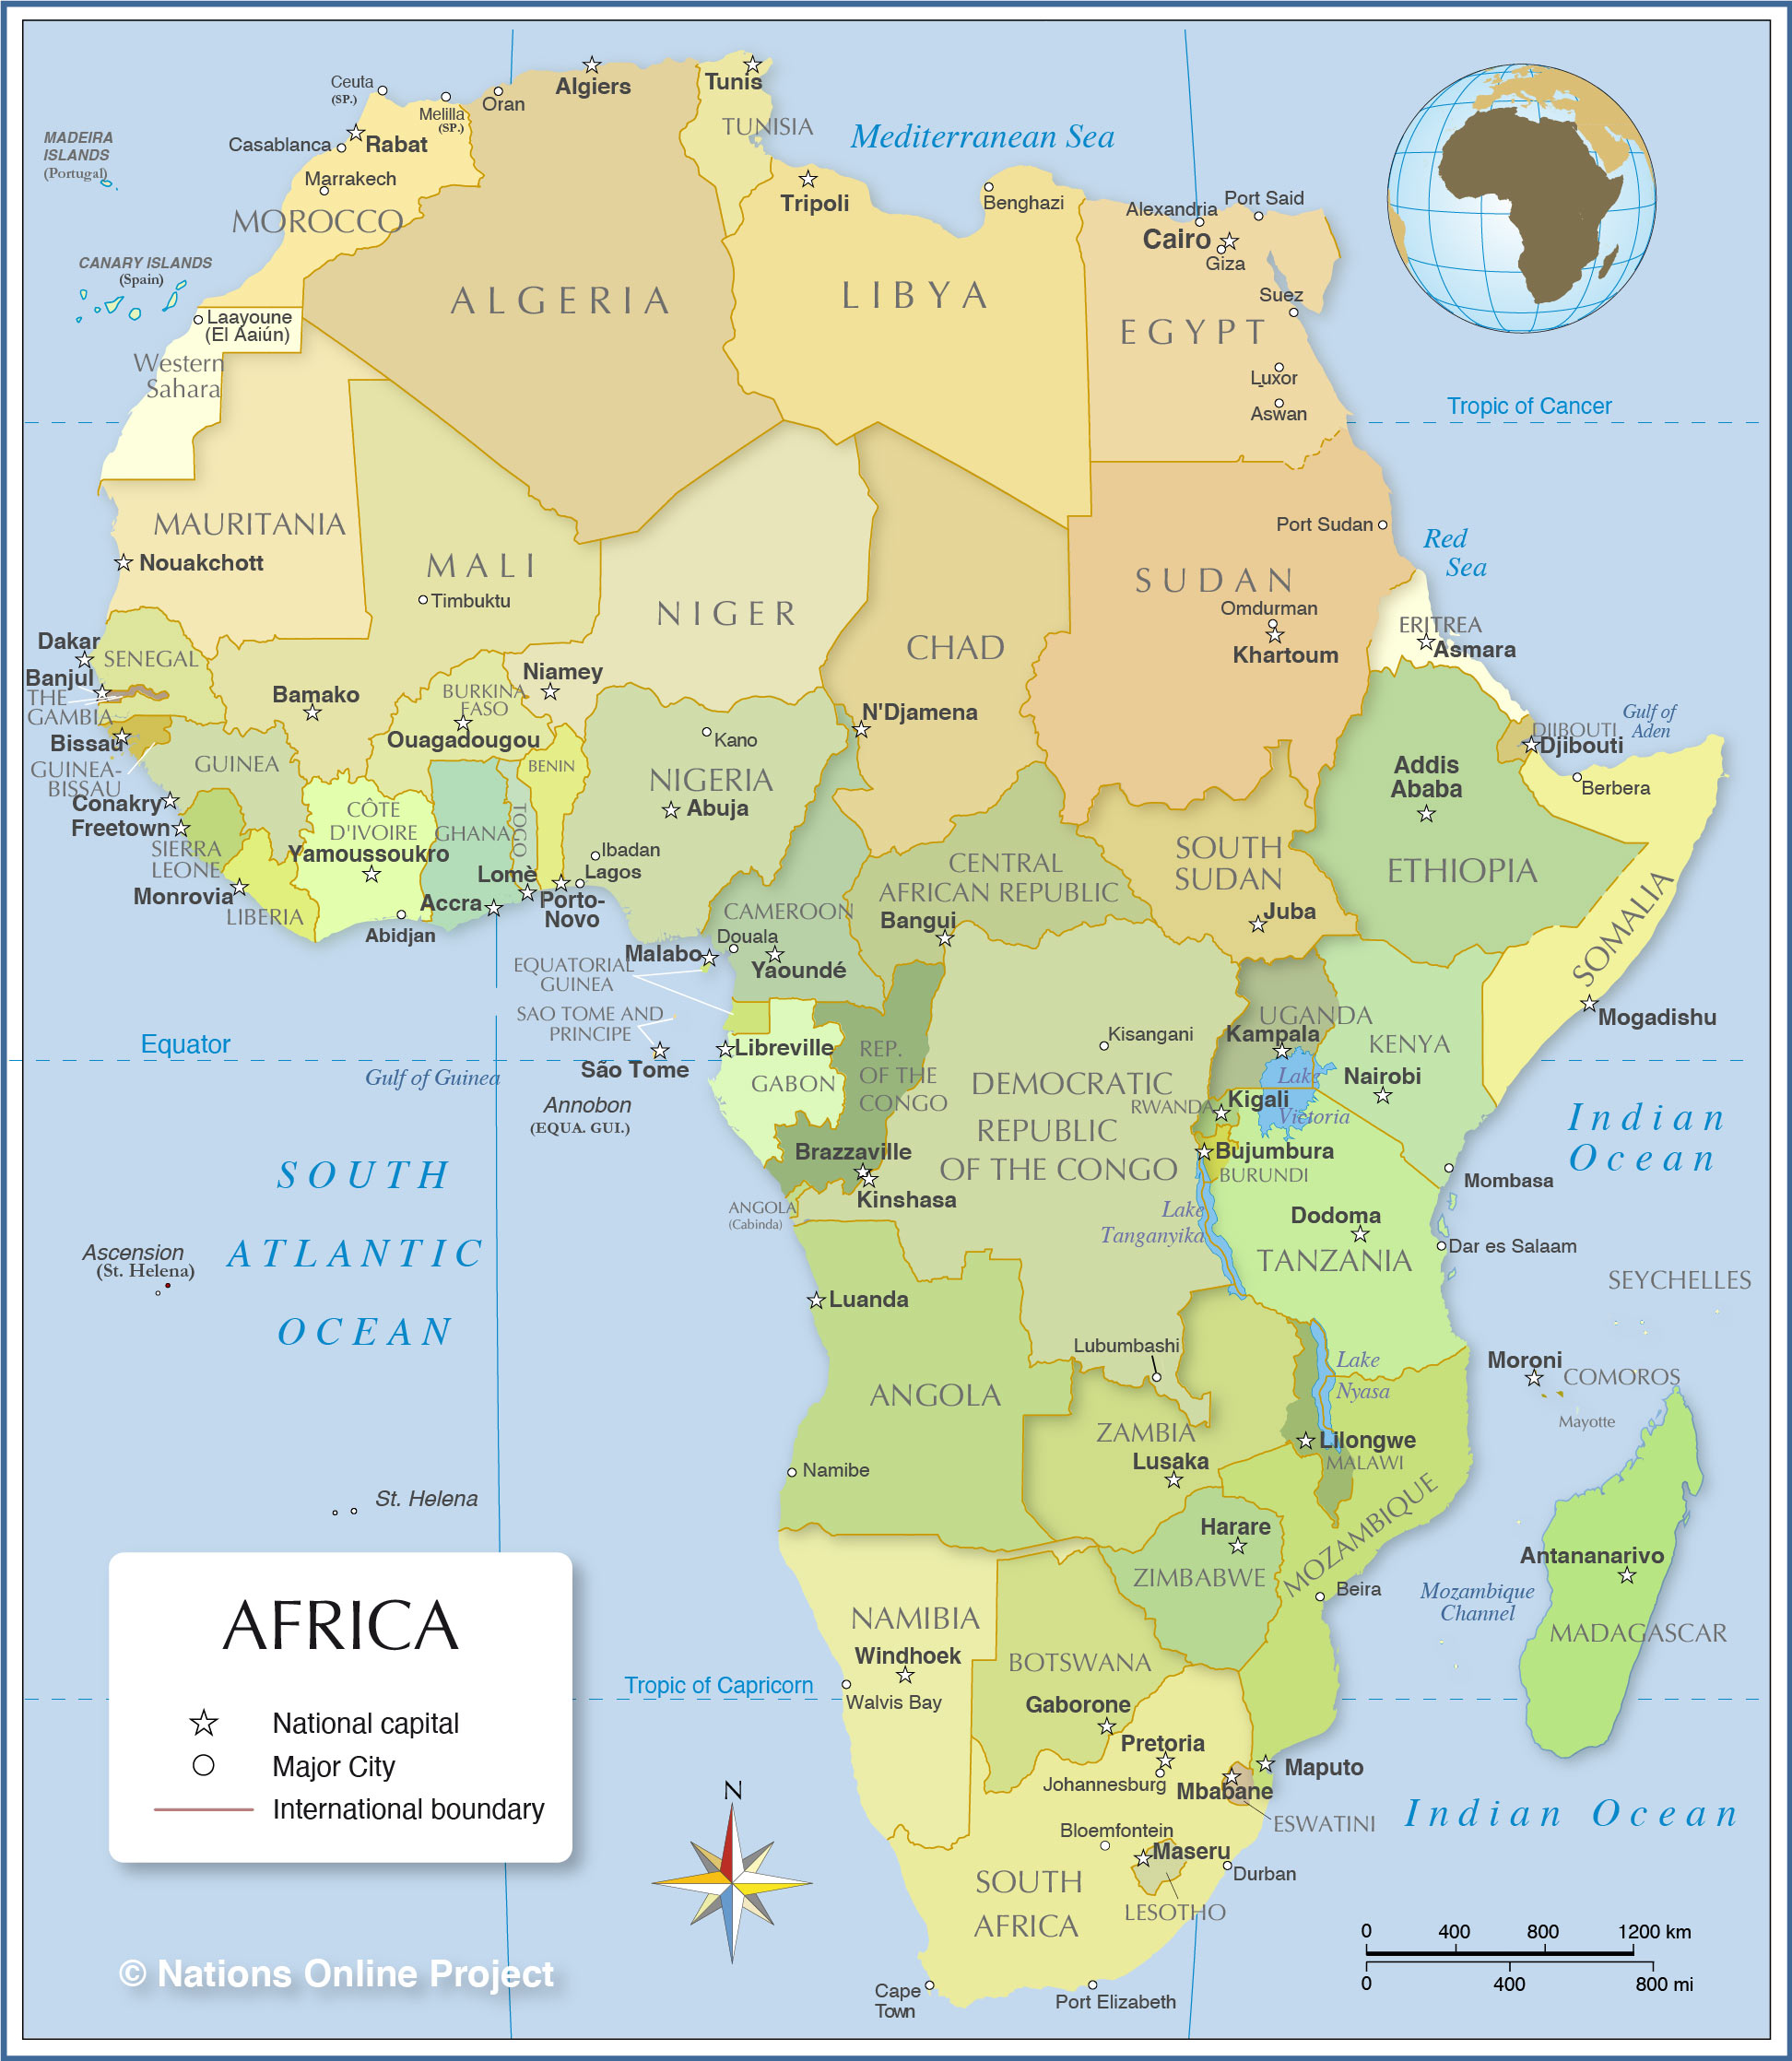 Africa Map - Worldwindtours.com